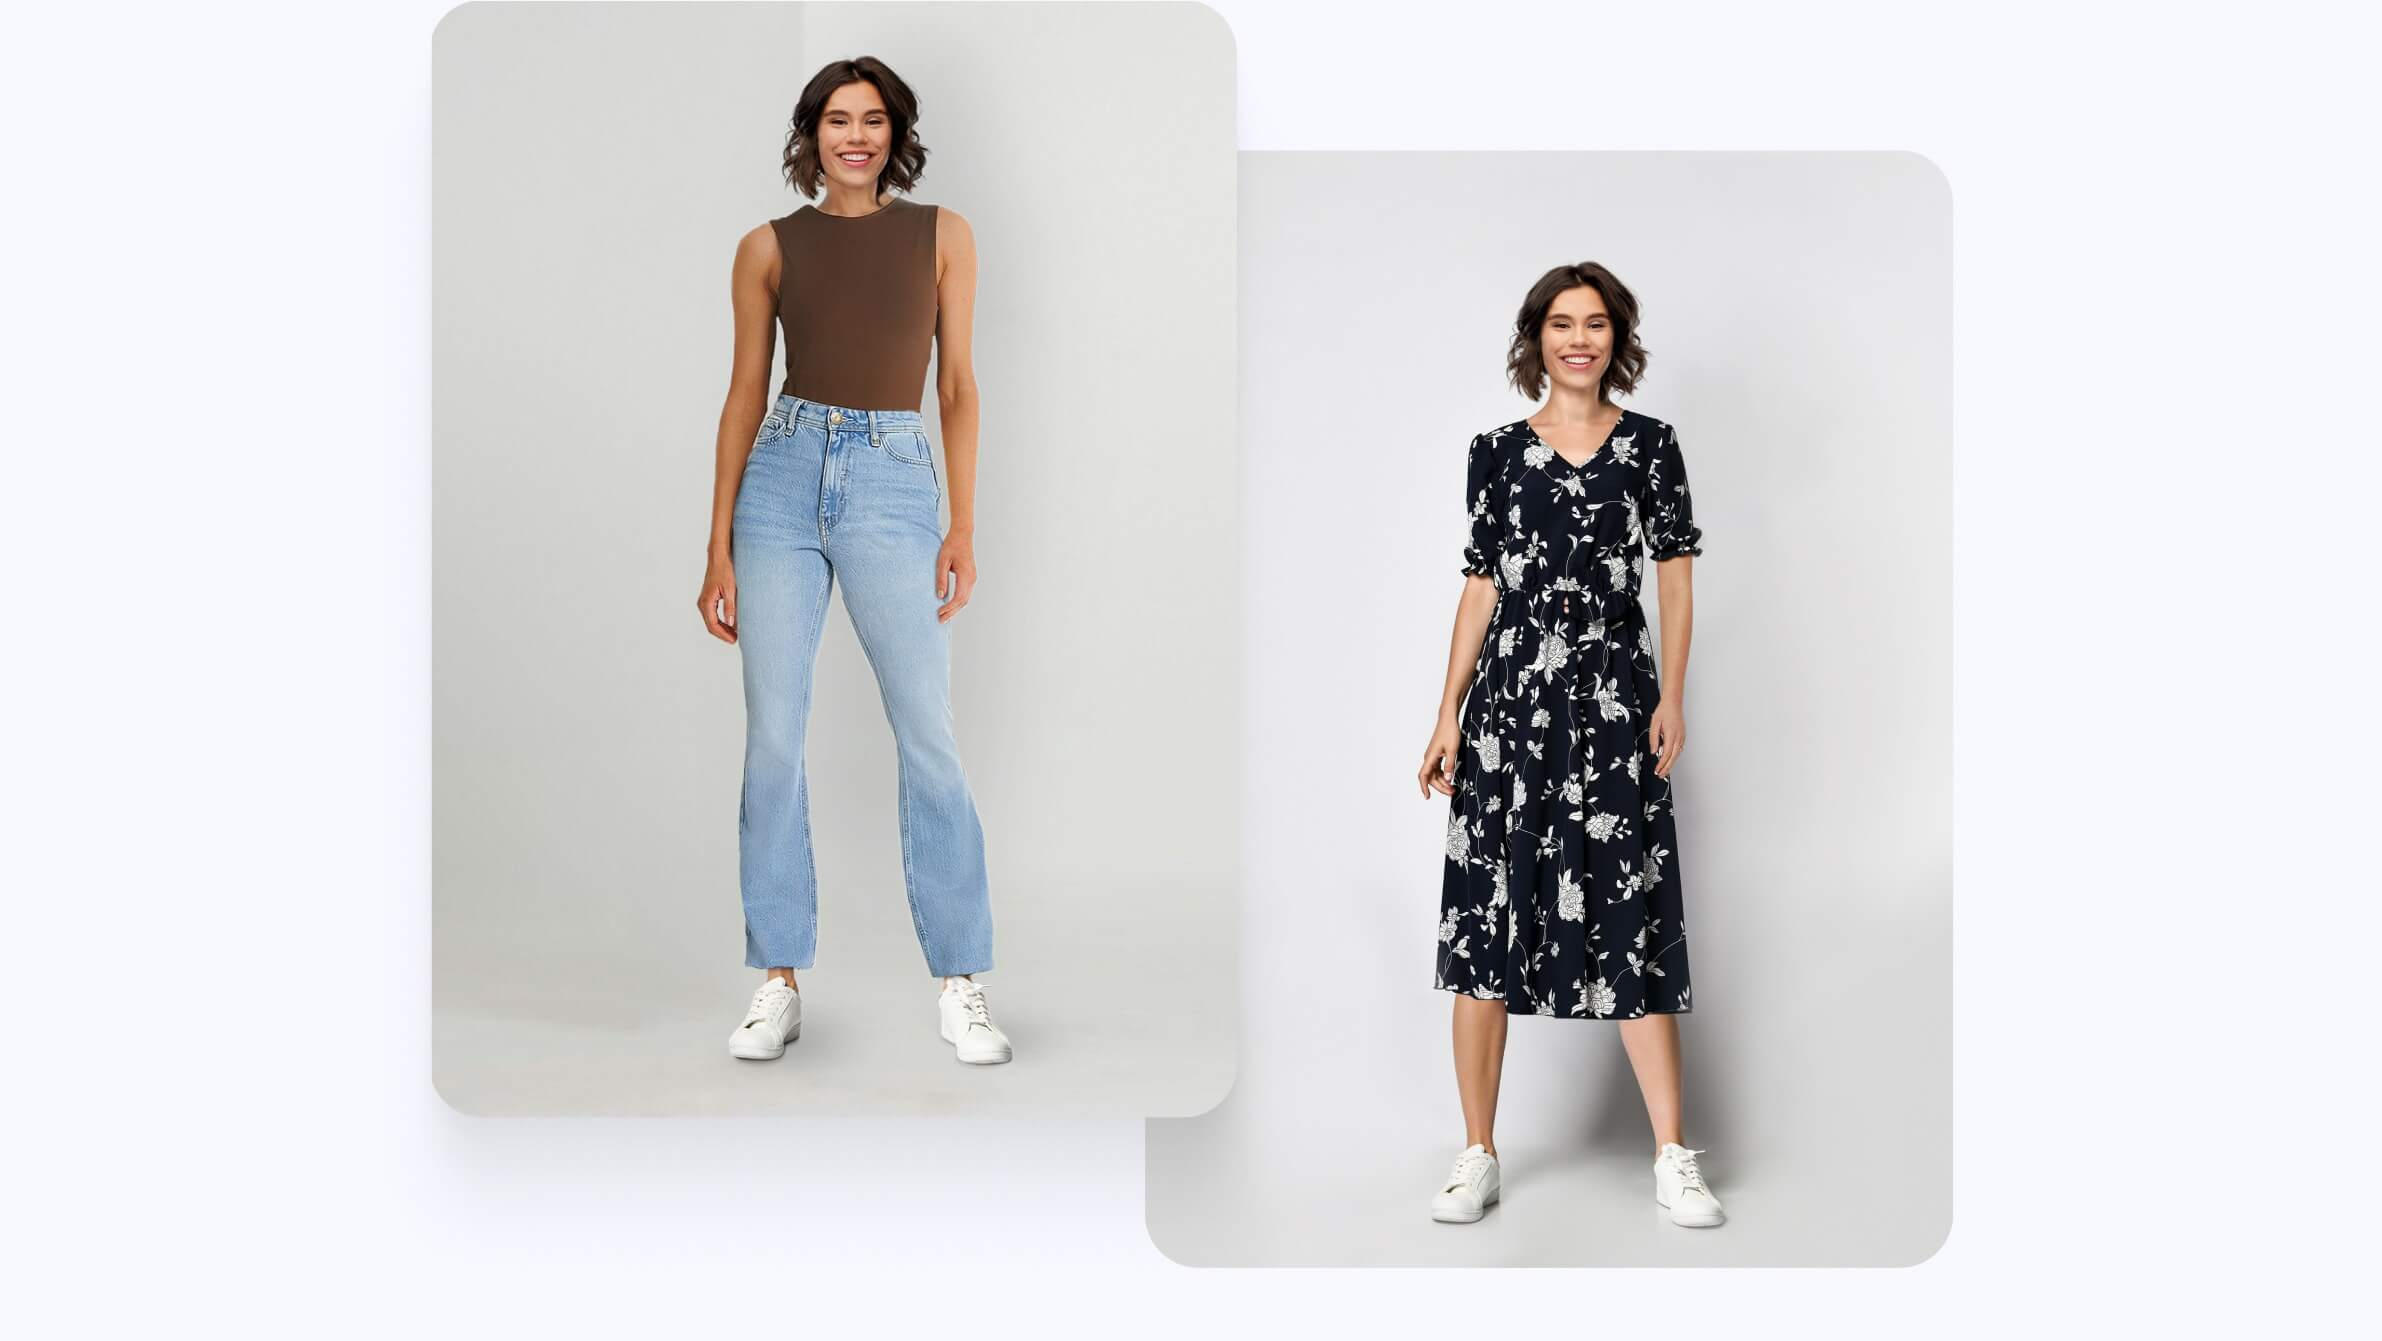 The power of a virtual dressing